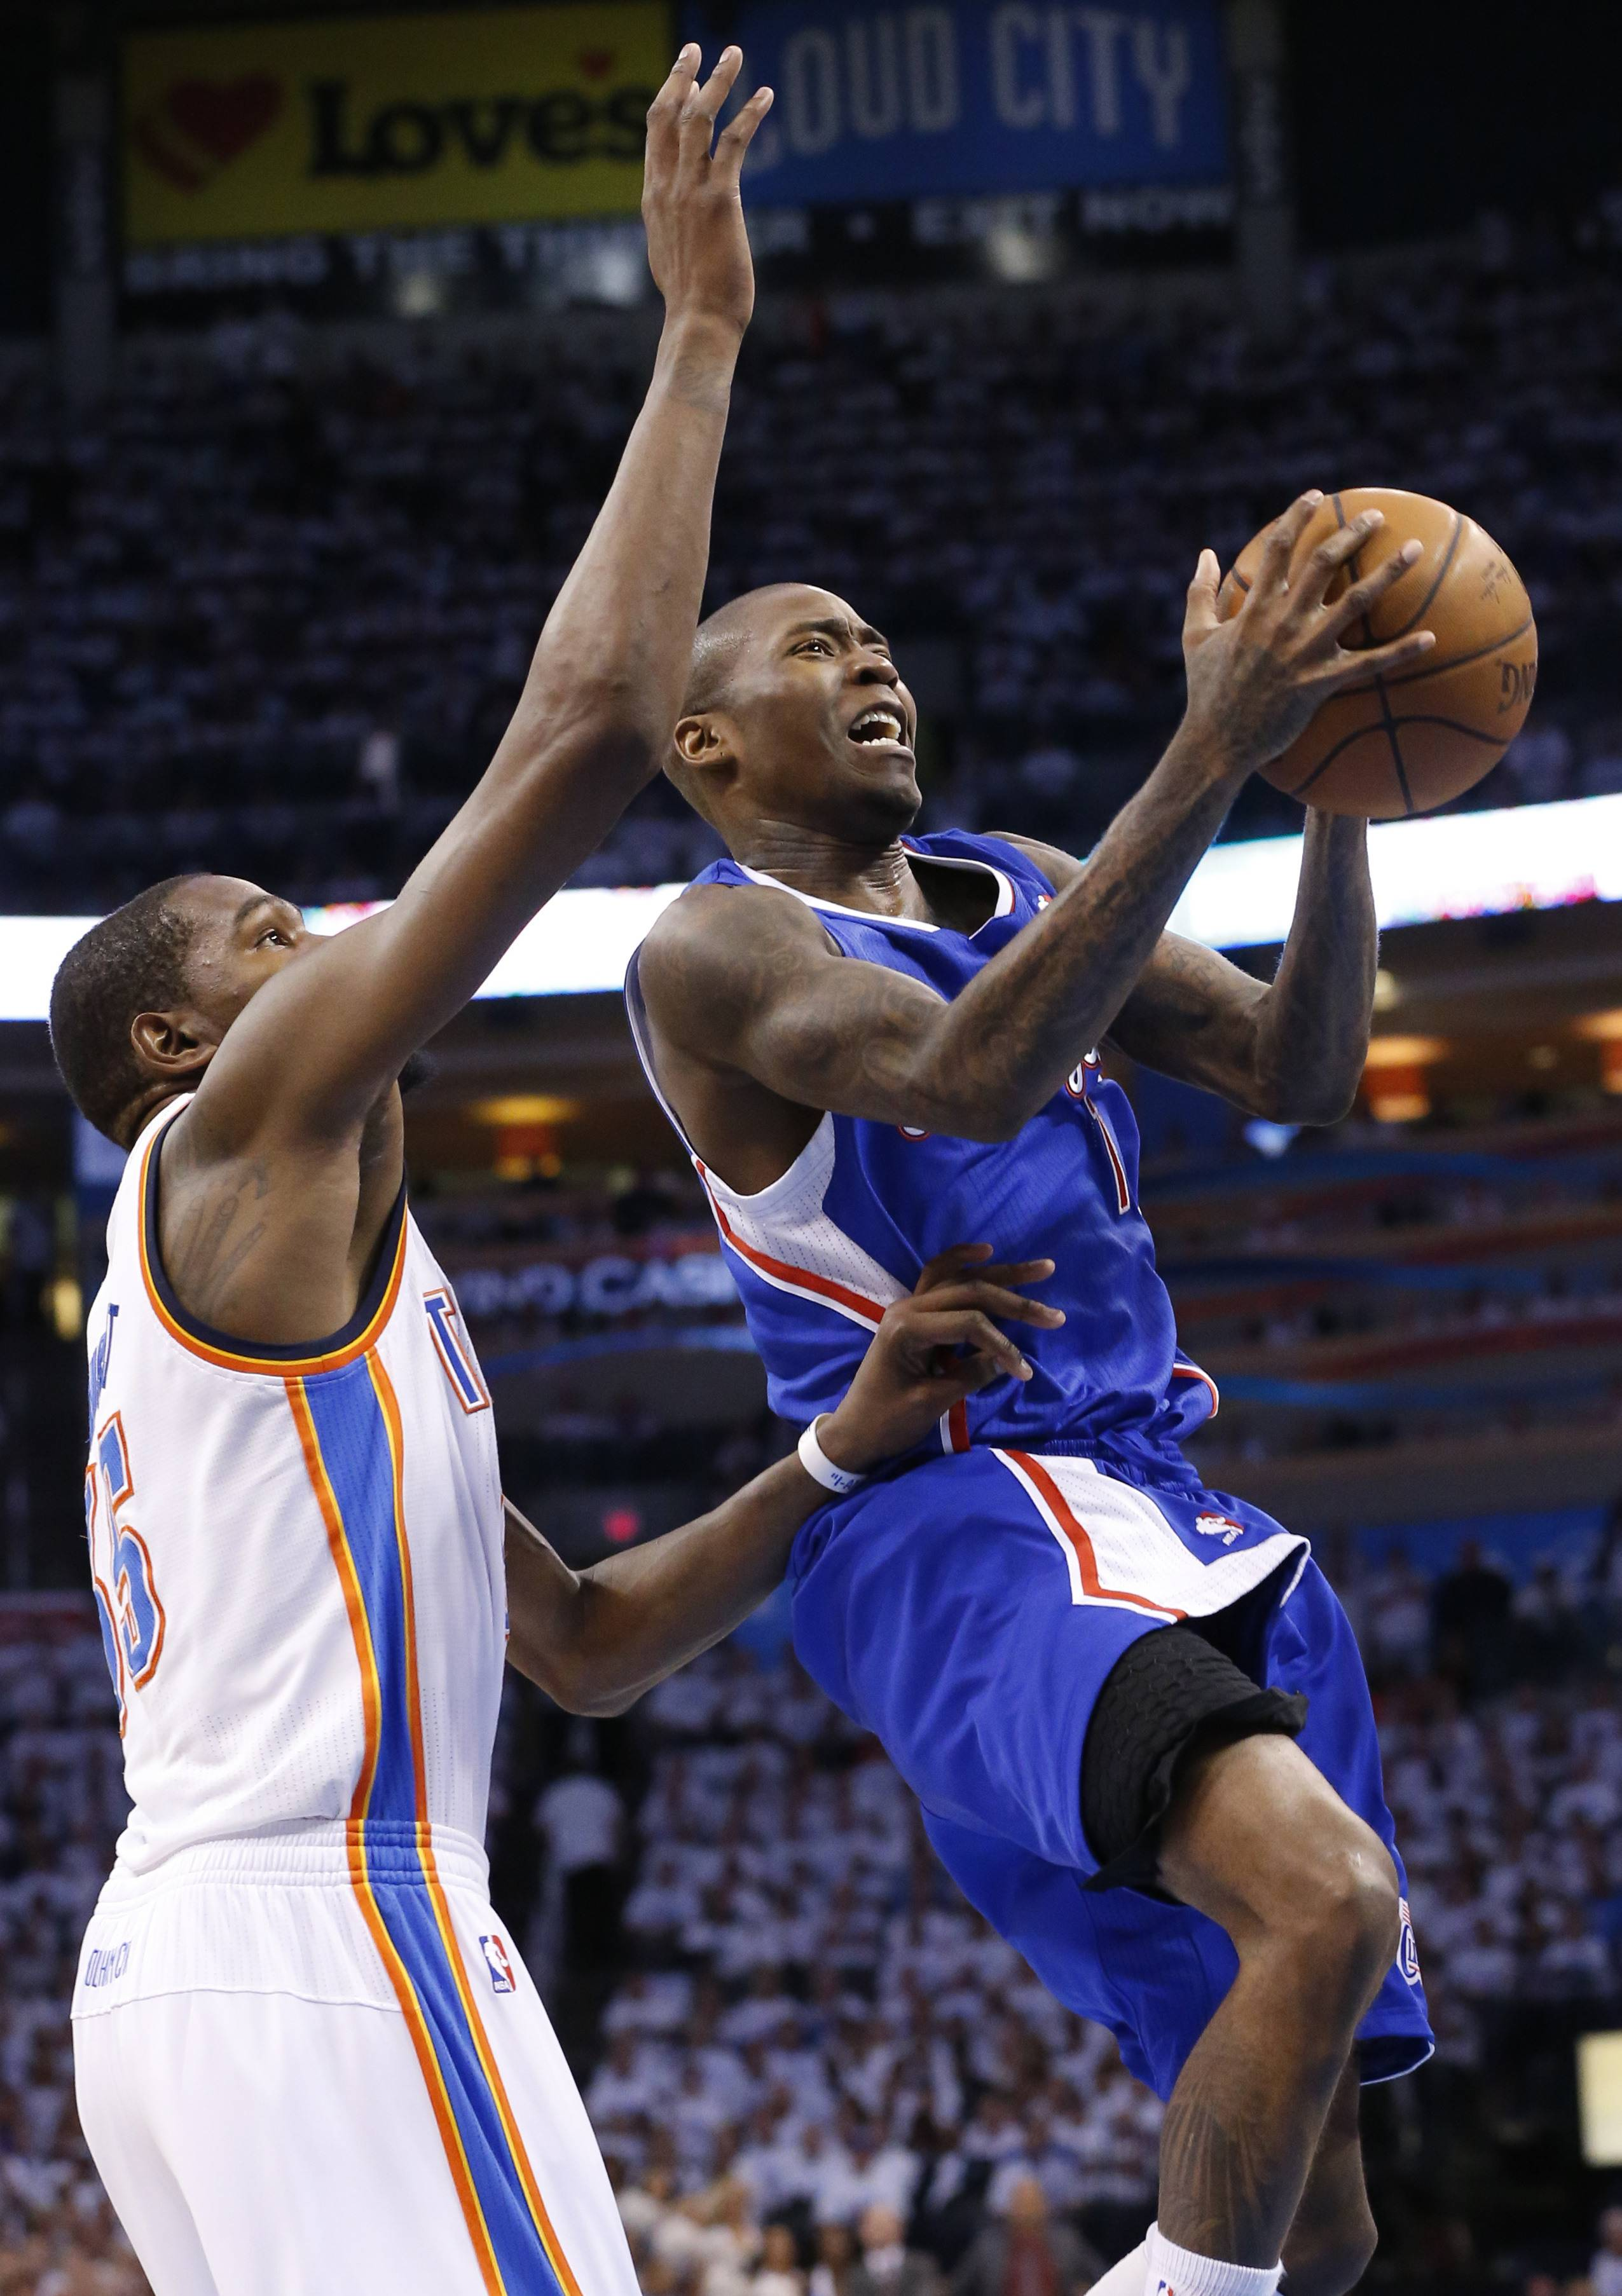 Los Angeles Clippers guard Jamal Crawford (11) shoots in front of Oklahoma City Thunder forward Kevin Durant (35) in the second quarter of Game 5 of the Western Conference semifinal NBA basketball playoff series in Oklahoma City, Tuesday, May 13, 2014. Oklahoma City won 105-104.